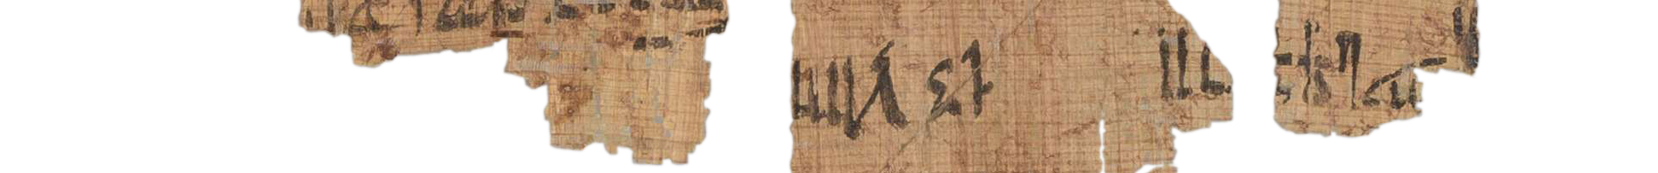 the Turin king list 4.9 (photo of the hieratic text)